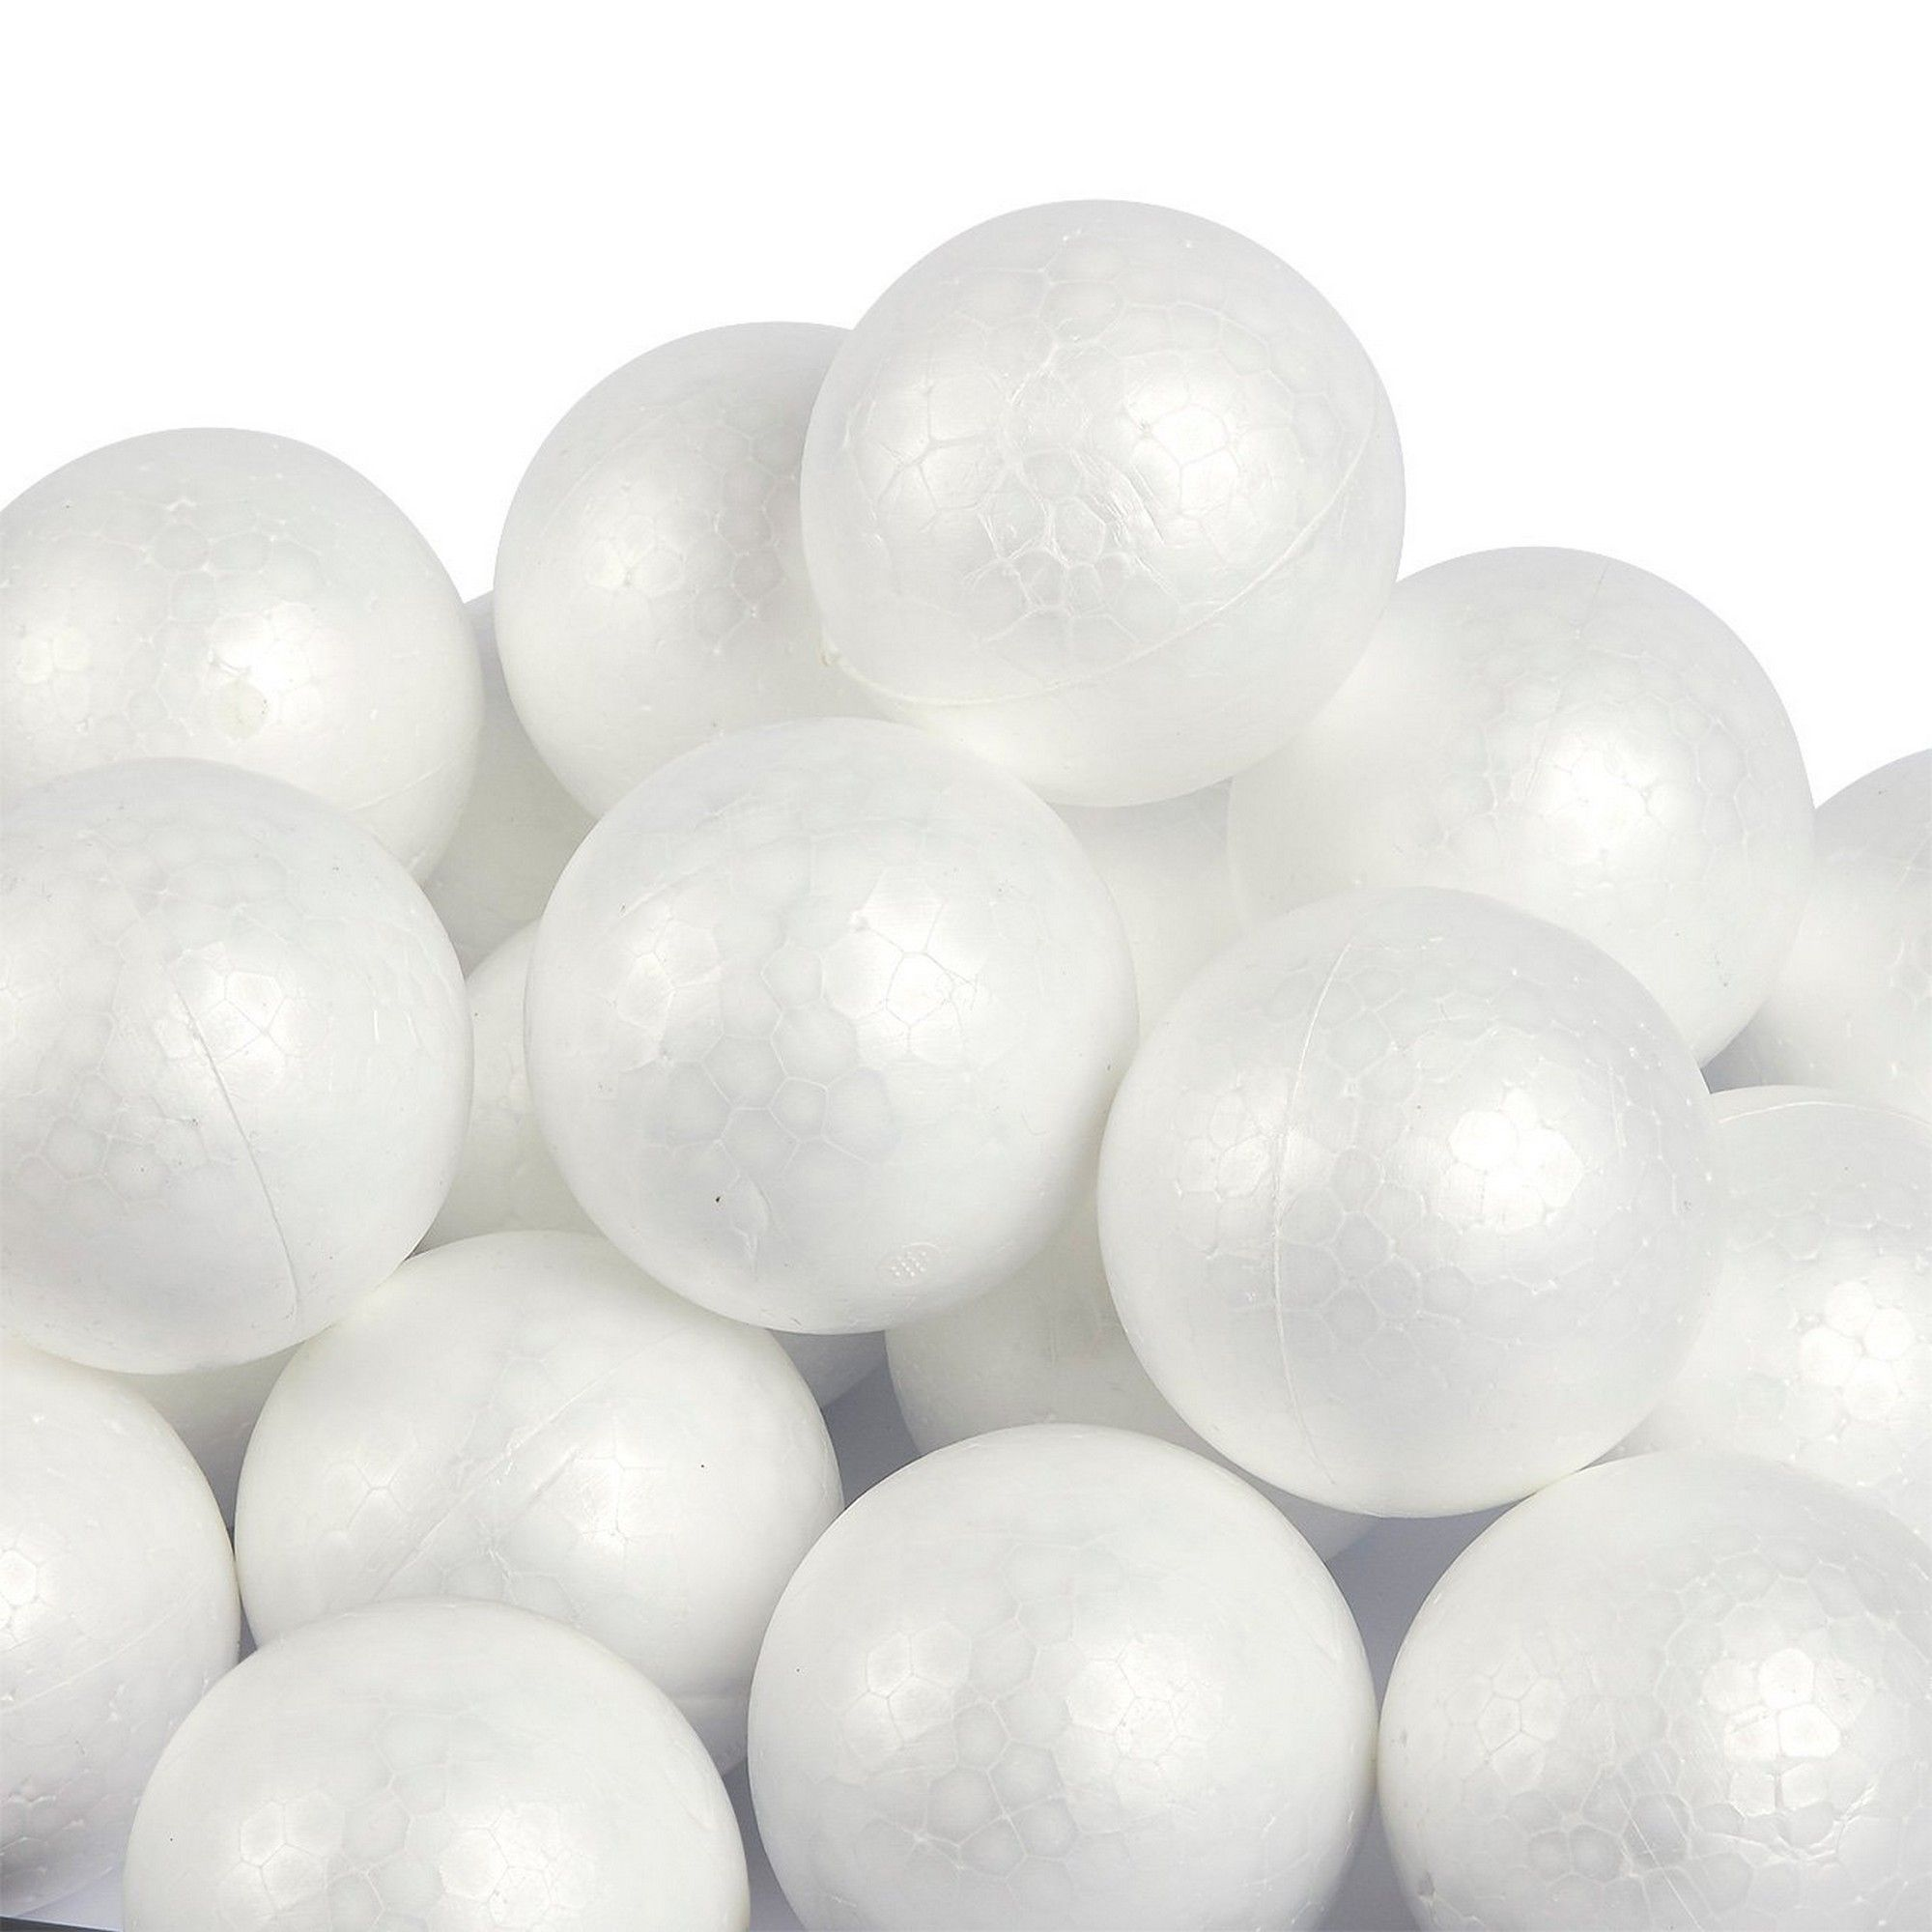 300 Pack Craft Foam Balls Arts and DIY Supplies in 5 Sizes